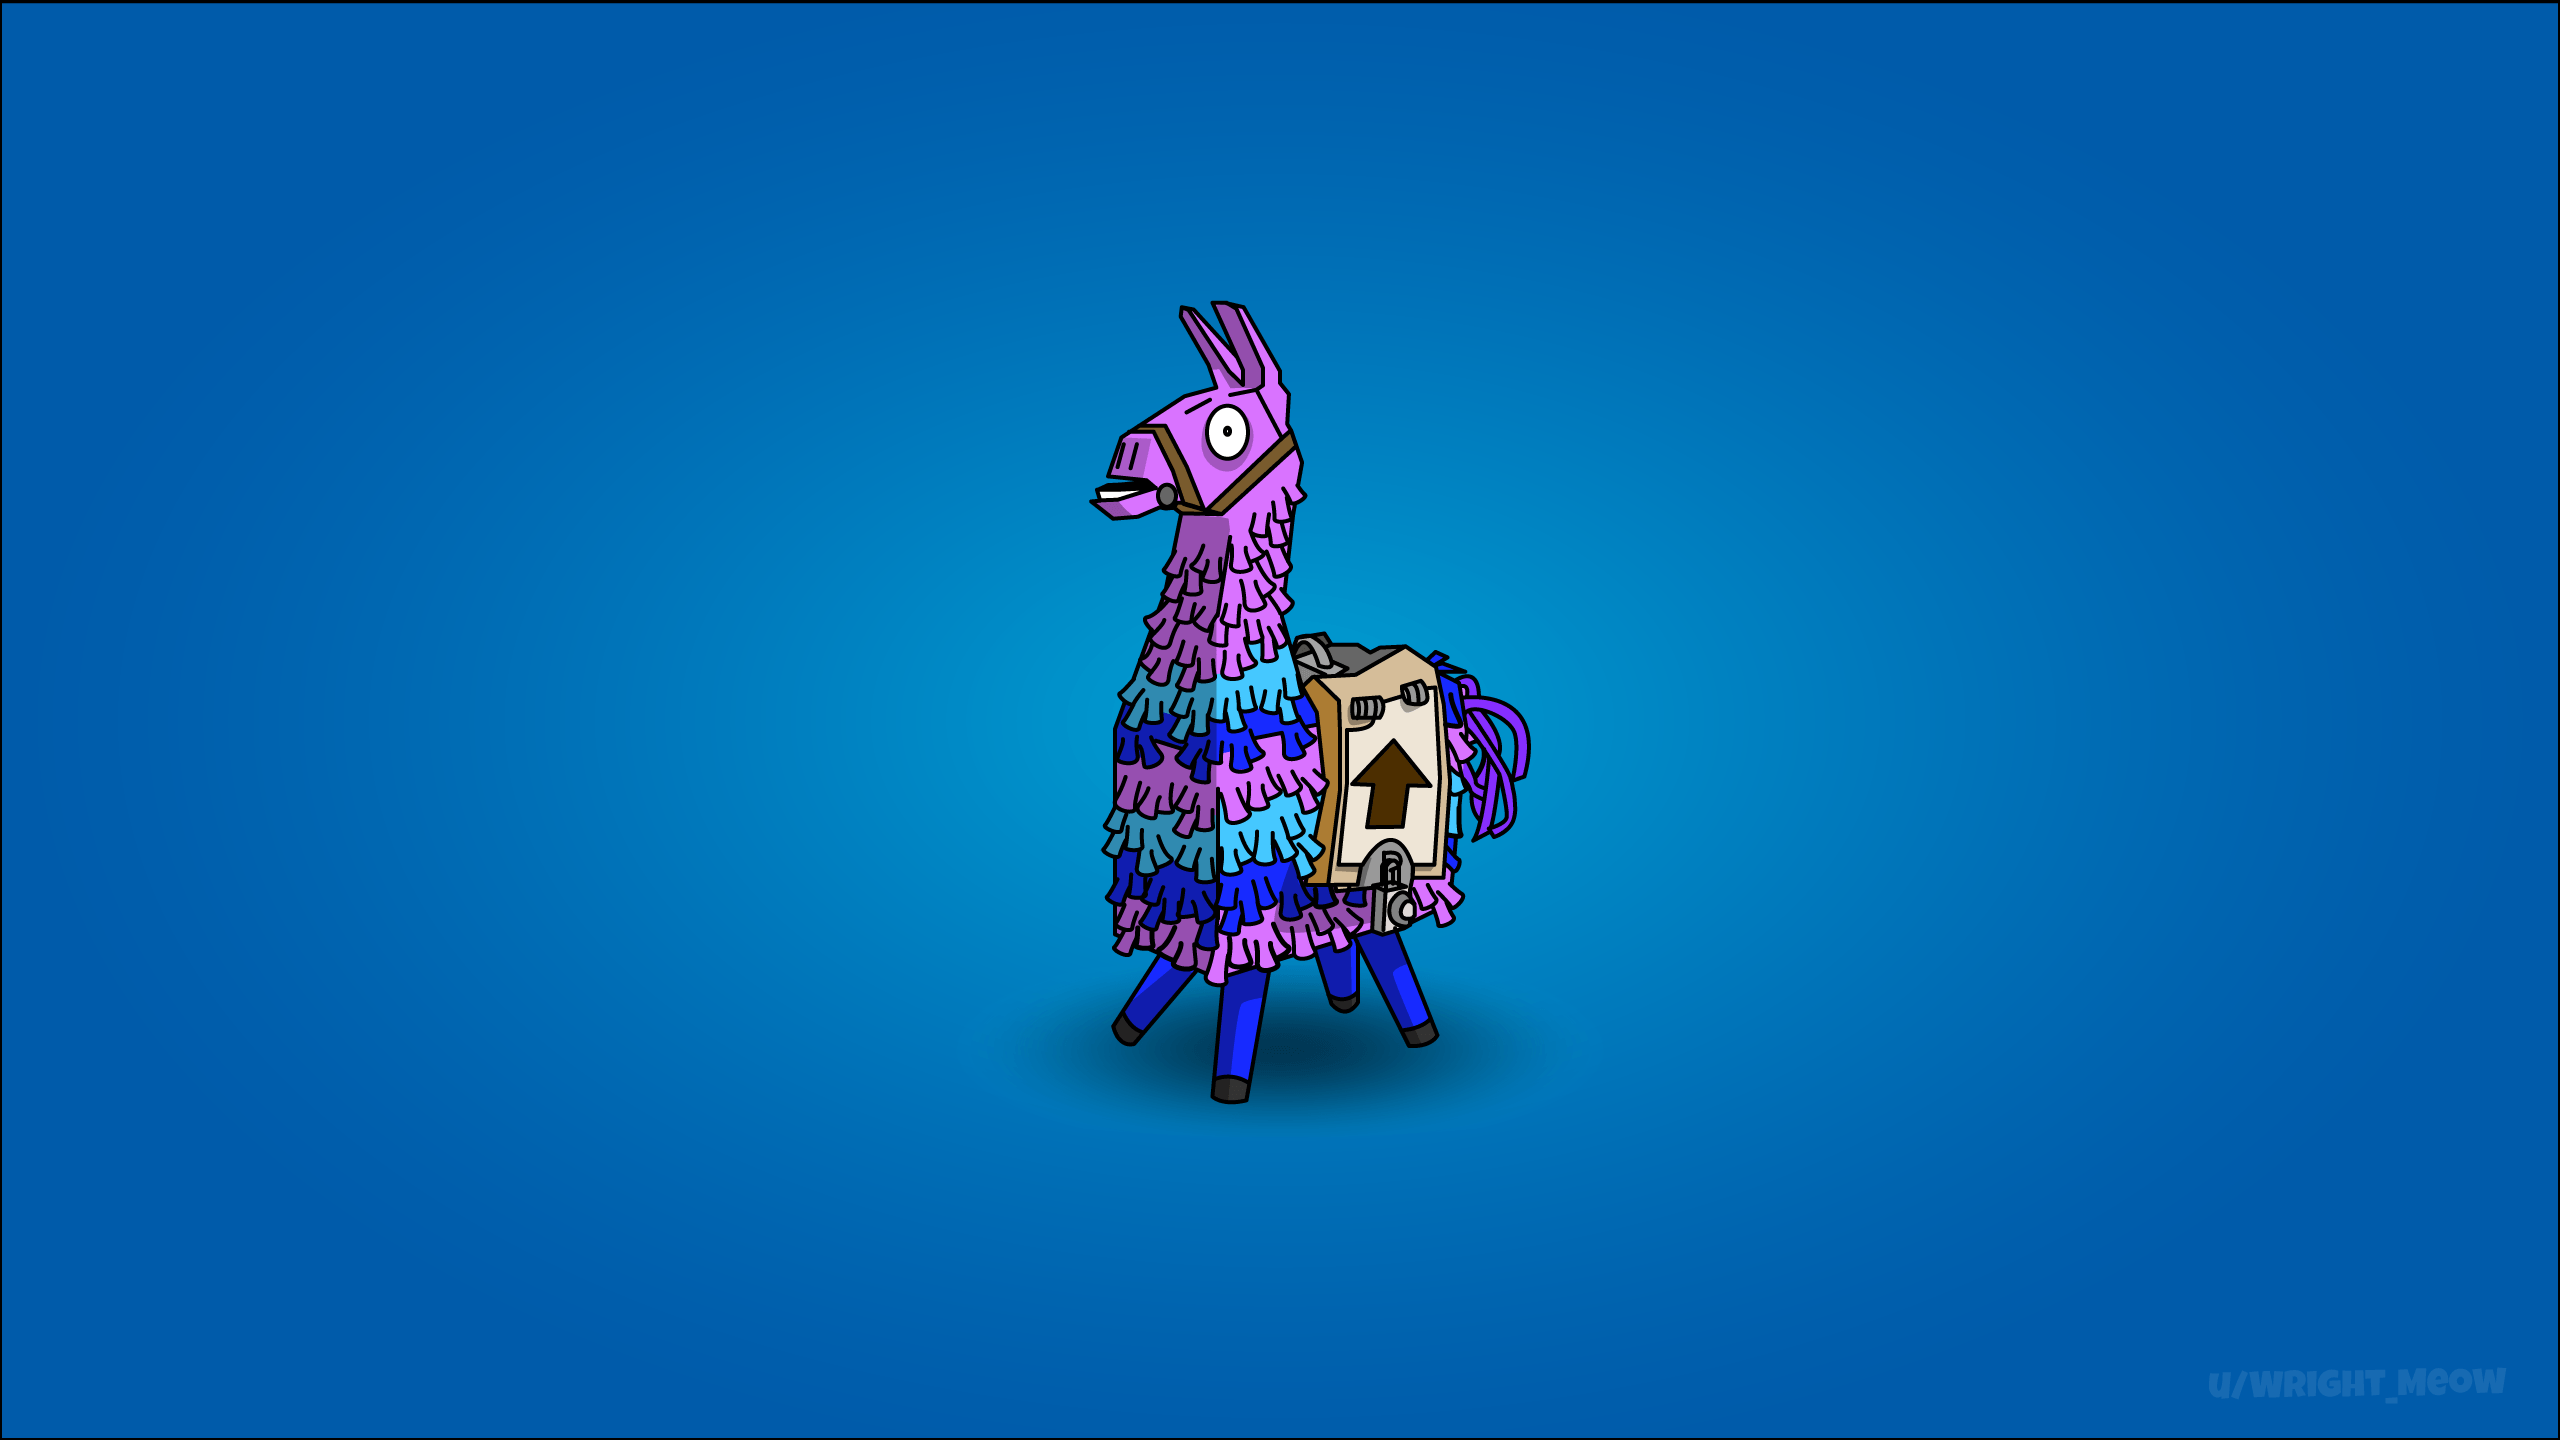 Loot Llama Wallpapers Top Free Loot Llama Backgrounds Wallpaperaccess